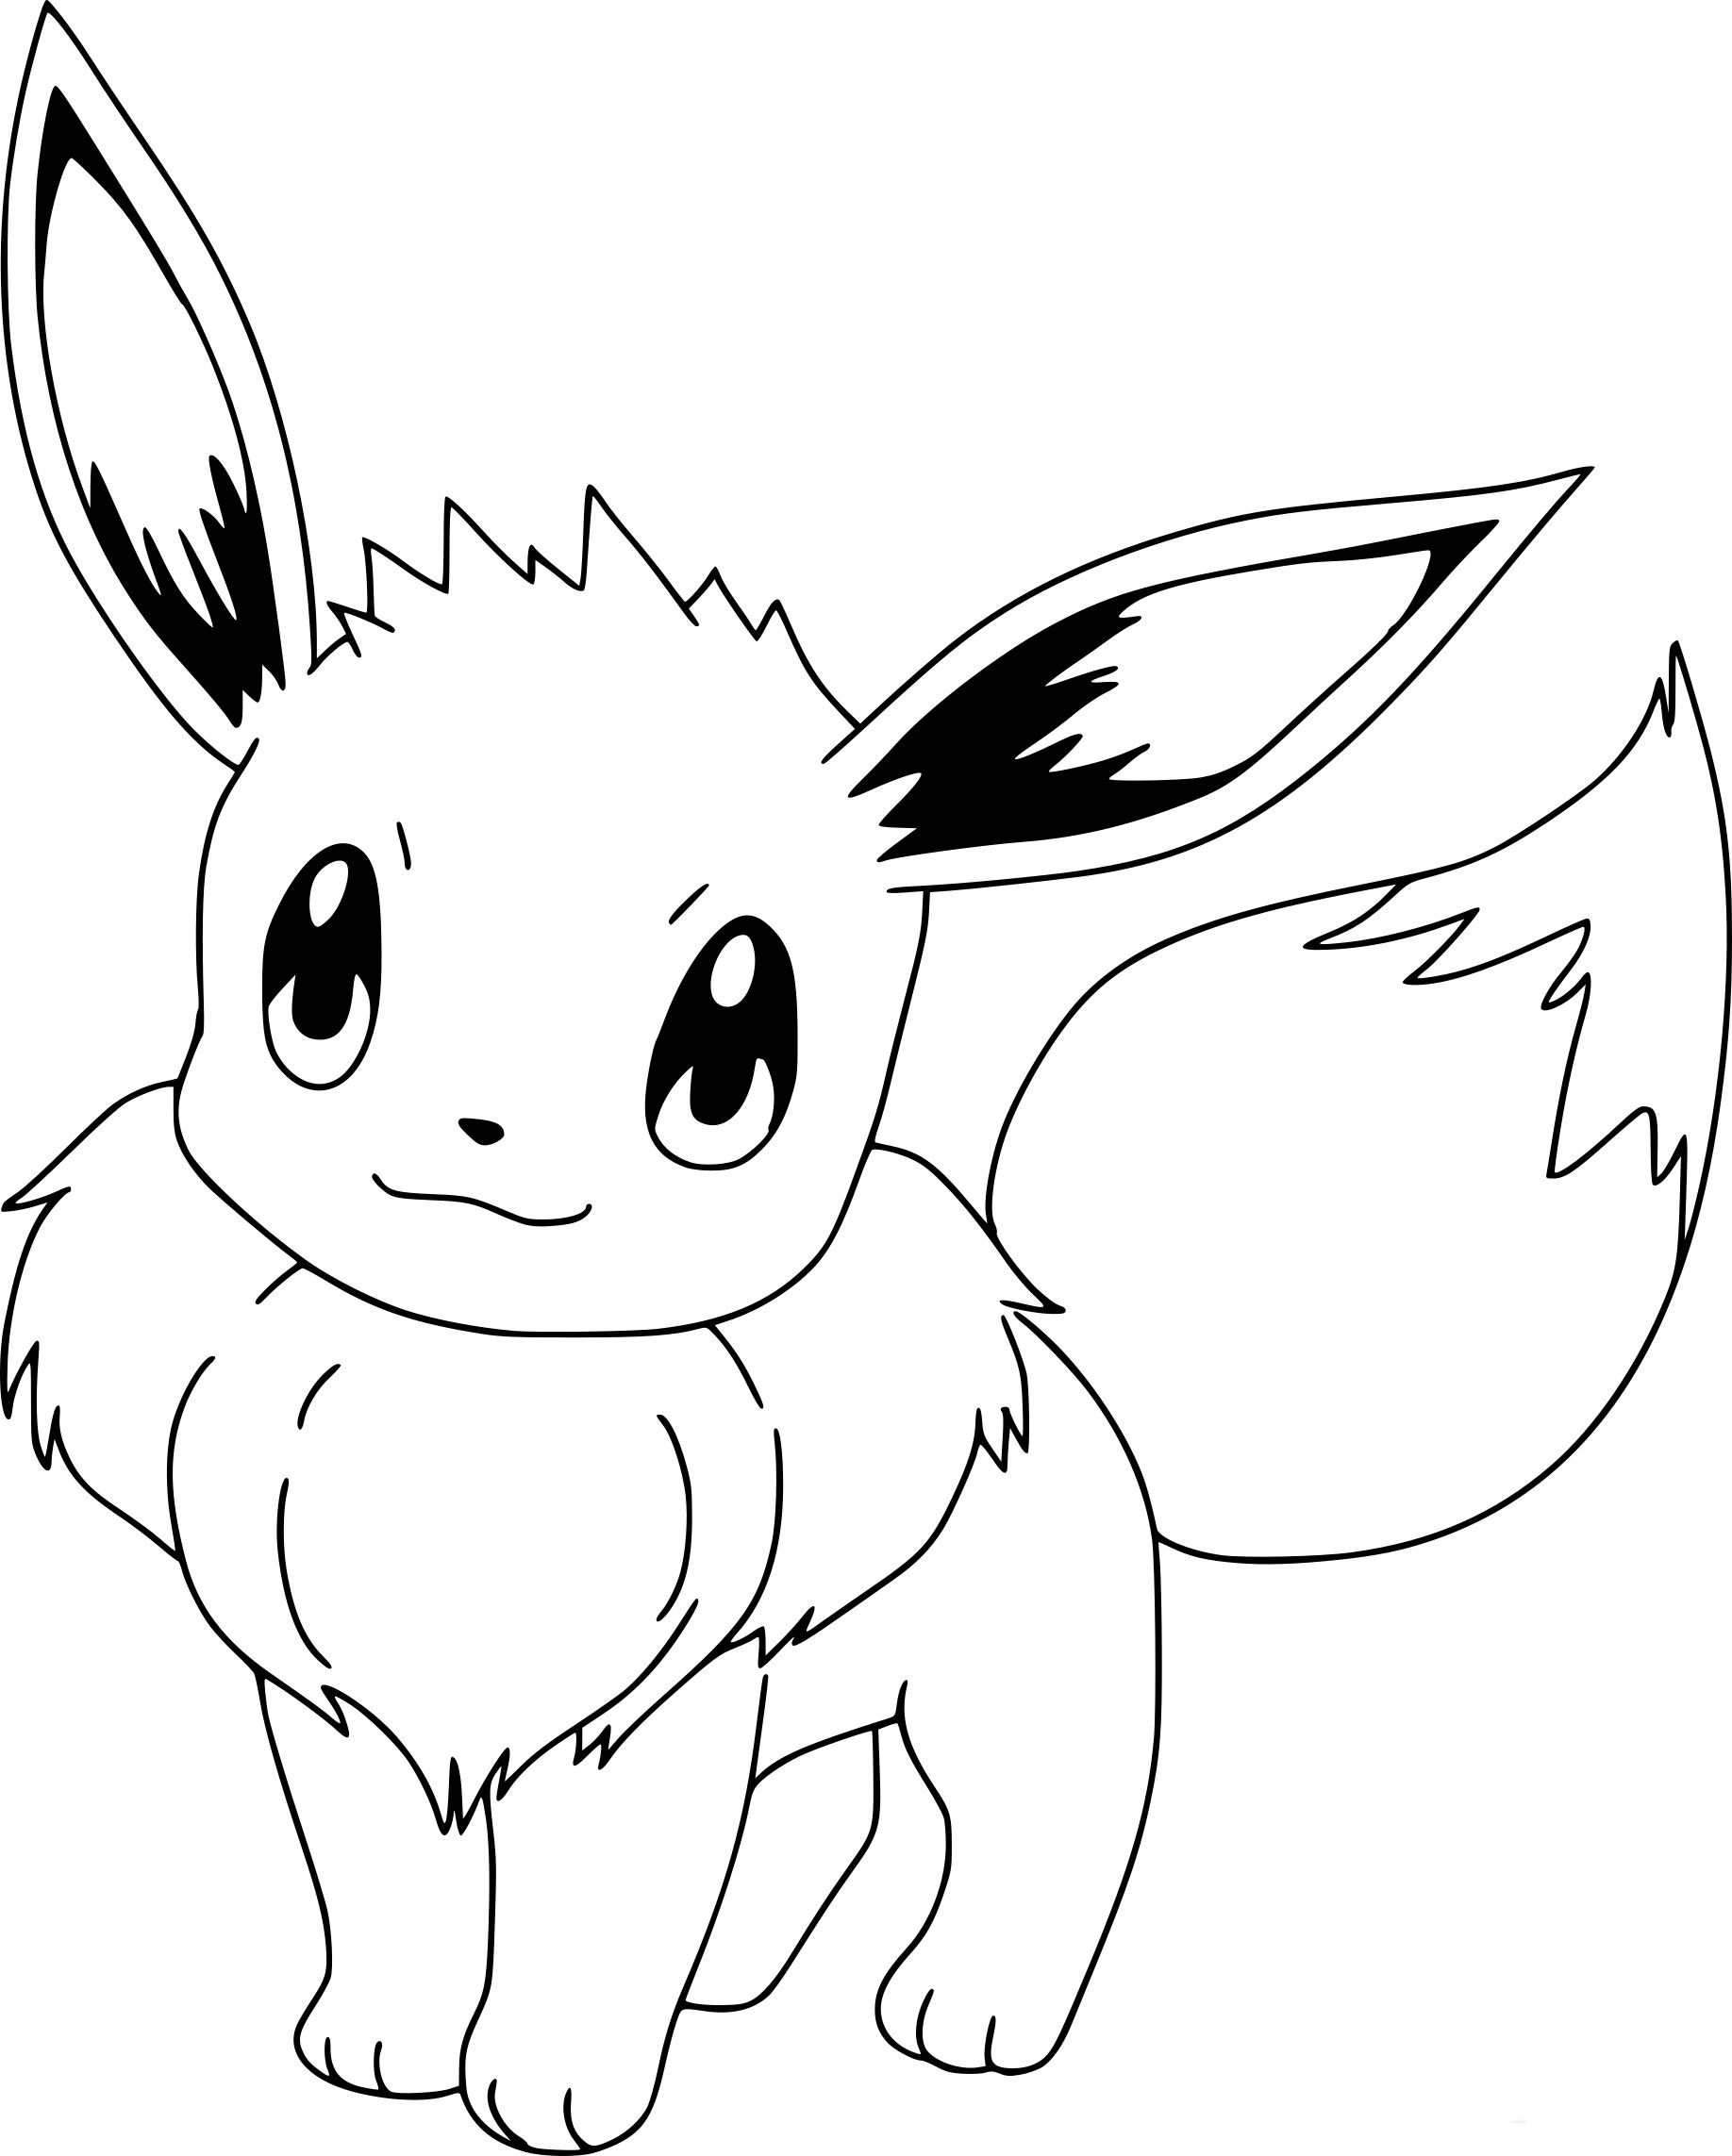 Coloriage pokemon evoli dessin imprimer sur coloriages info - Dessins de pokemon ...